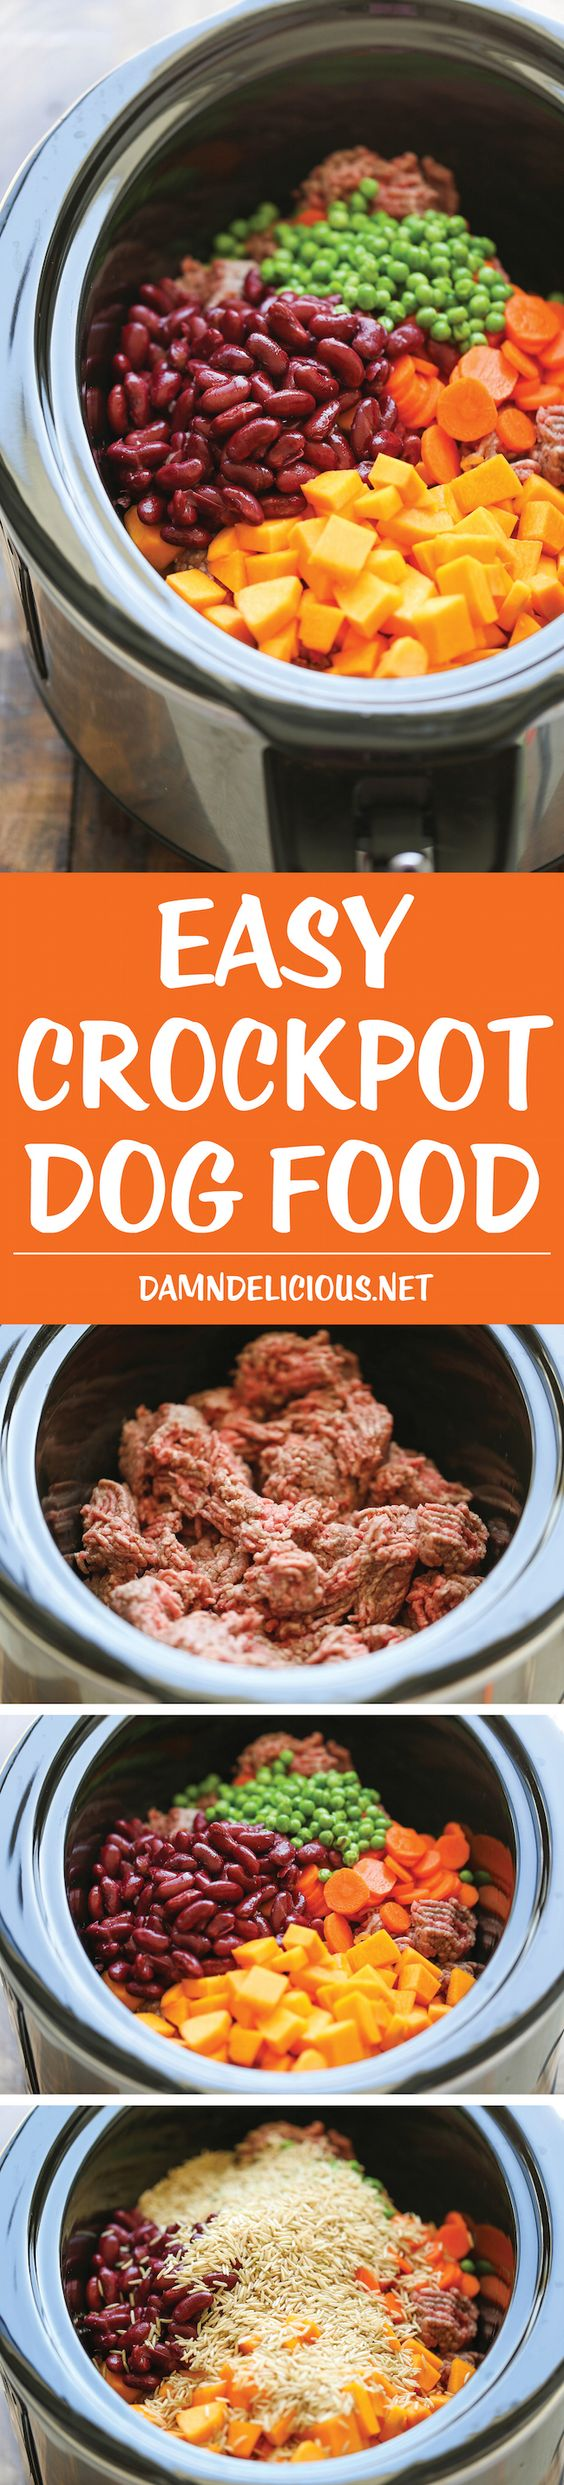 Dog Food Made With Ground Beef And Rice